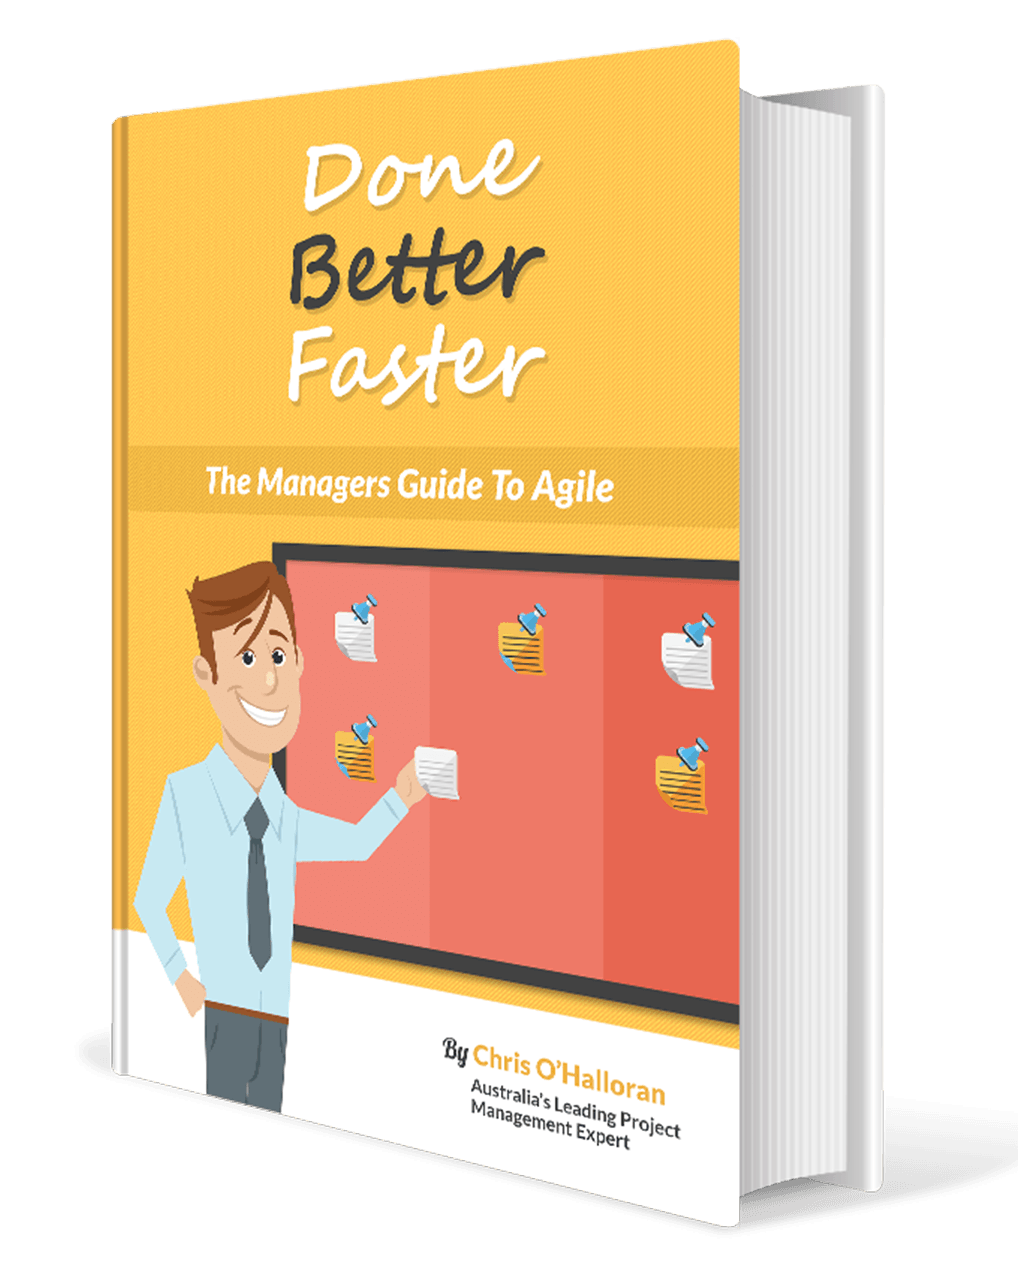 Agile & Scrum Book, Done Better Faster cover image